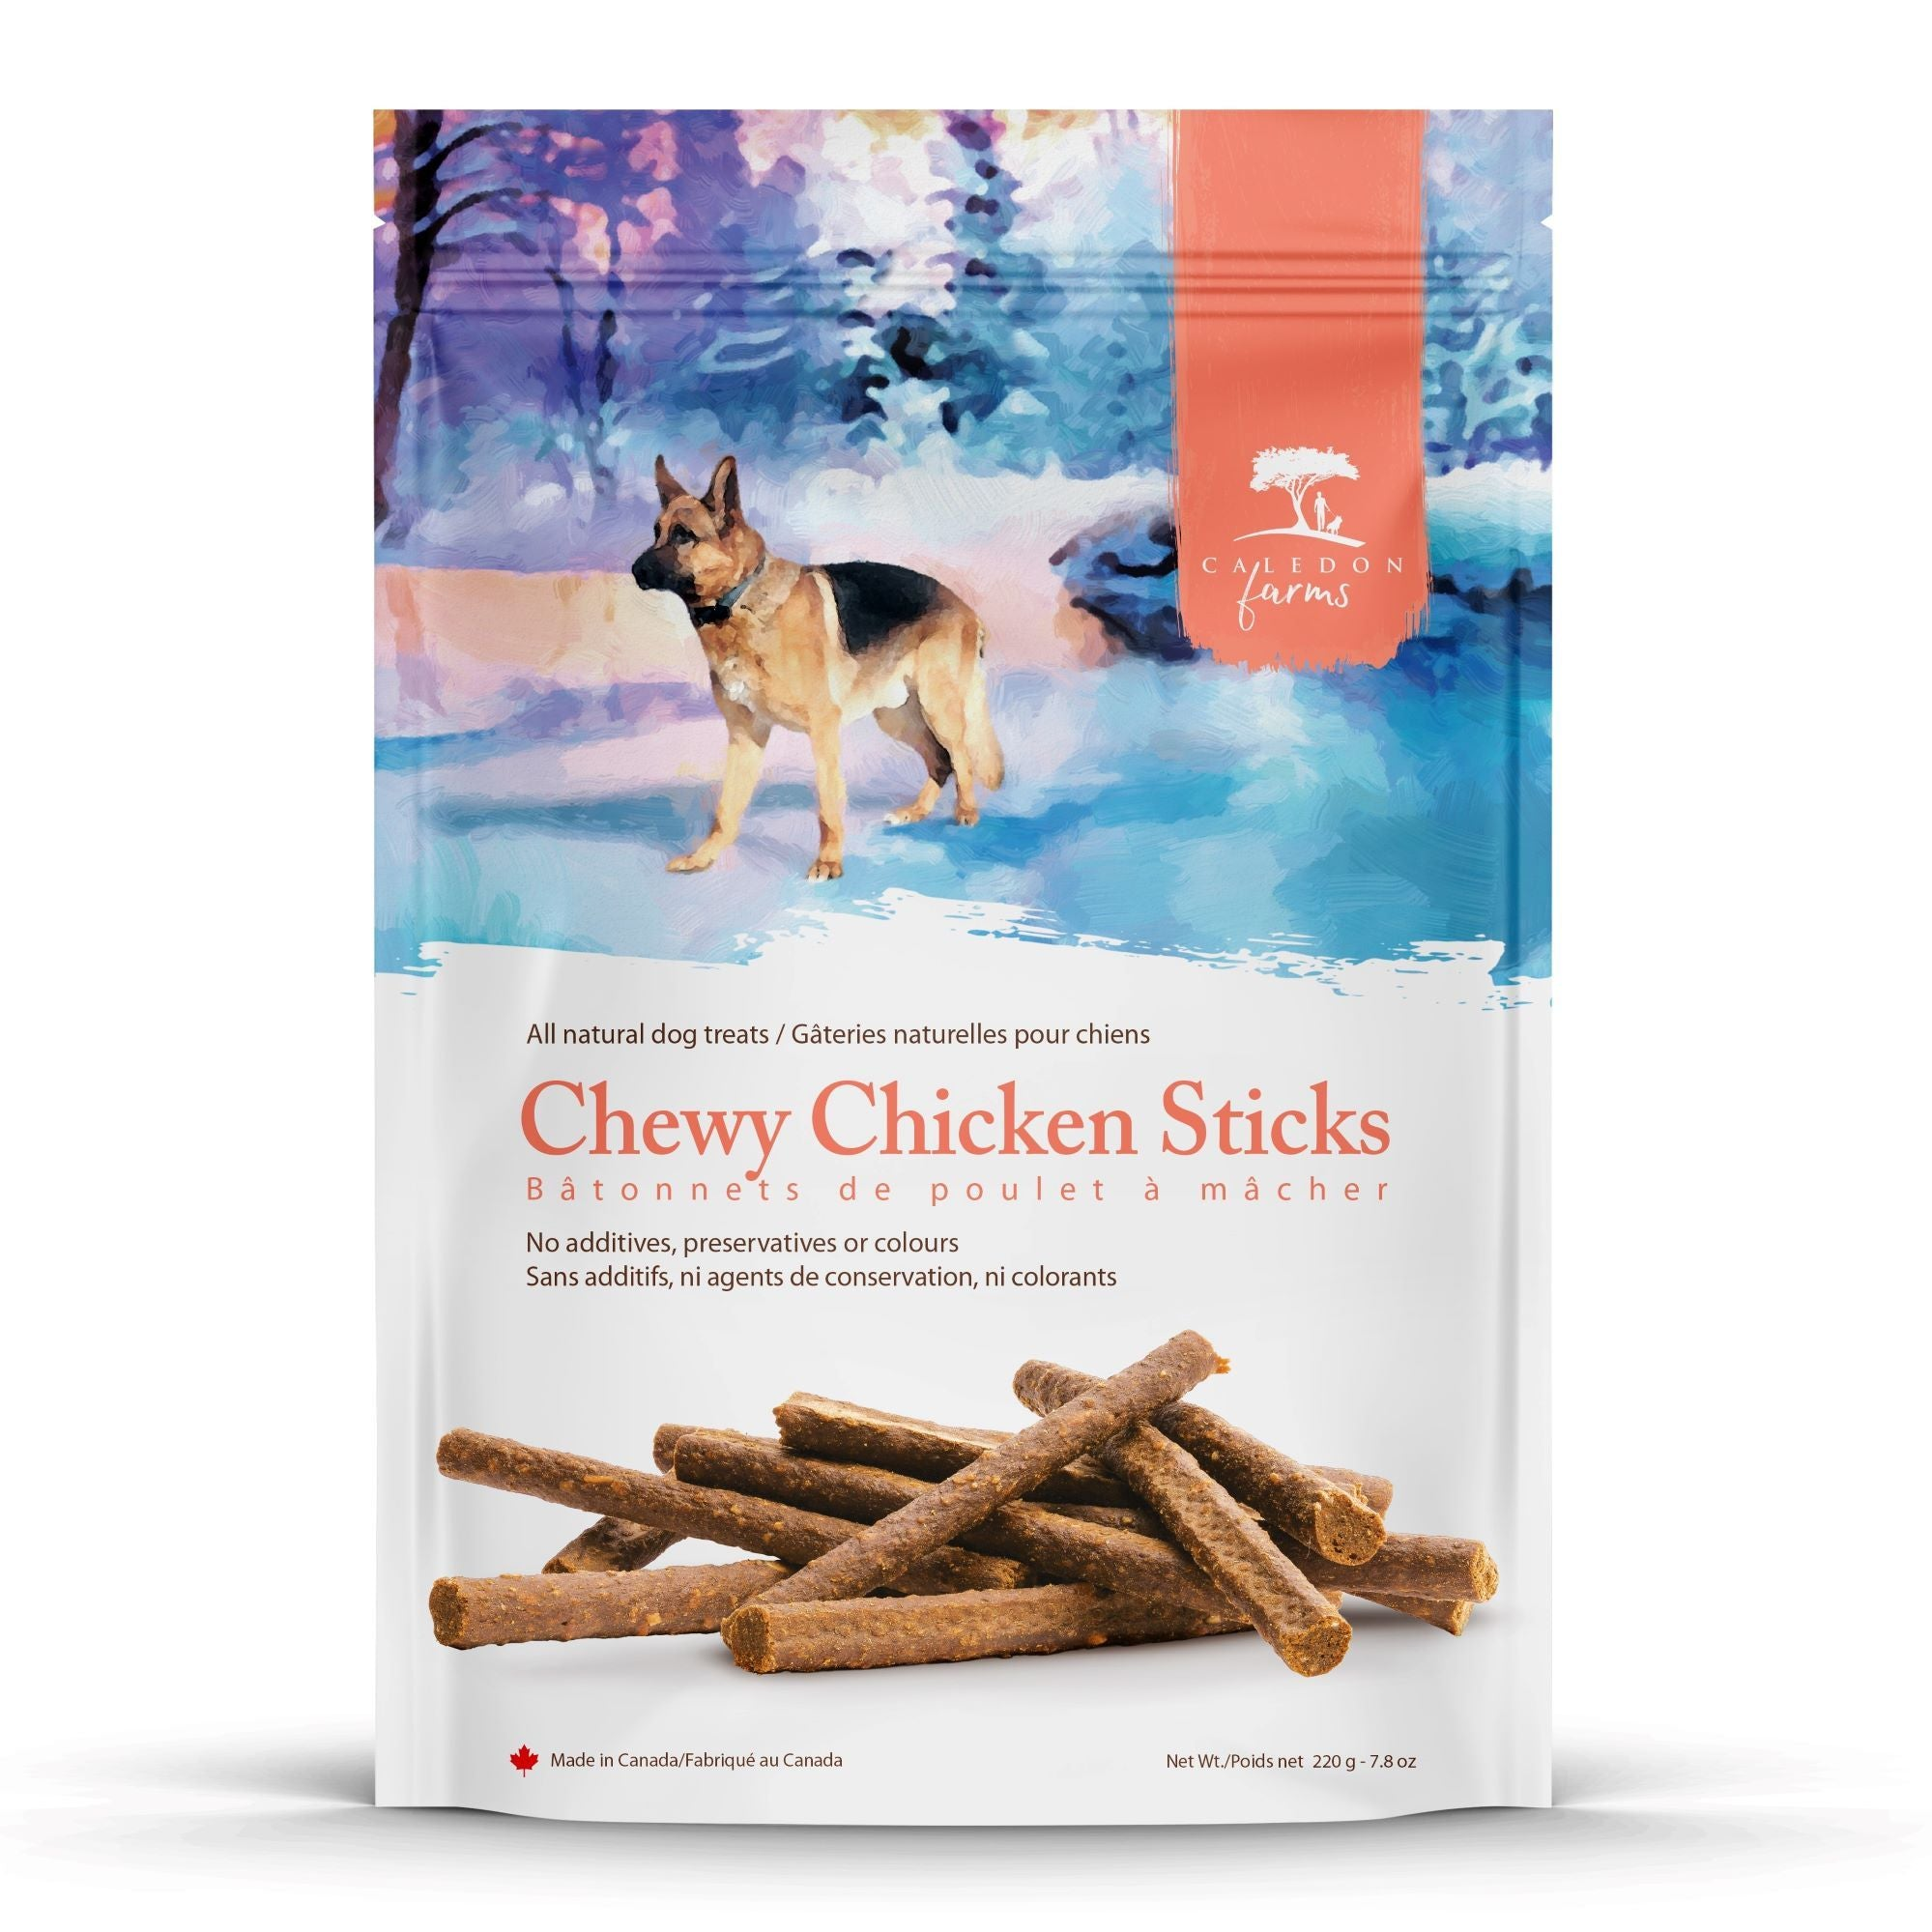 Chewy Chicken Sticks Dog Treats Bag Front